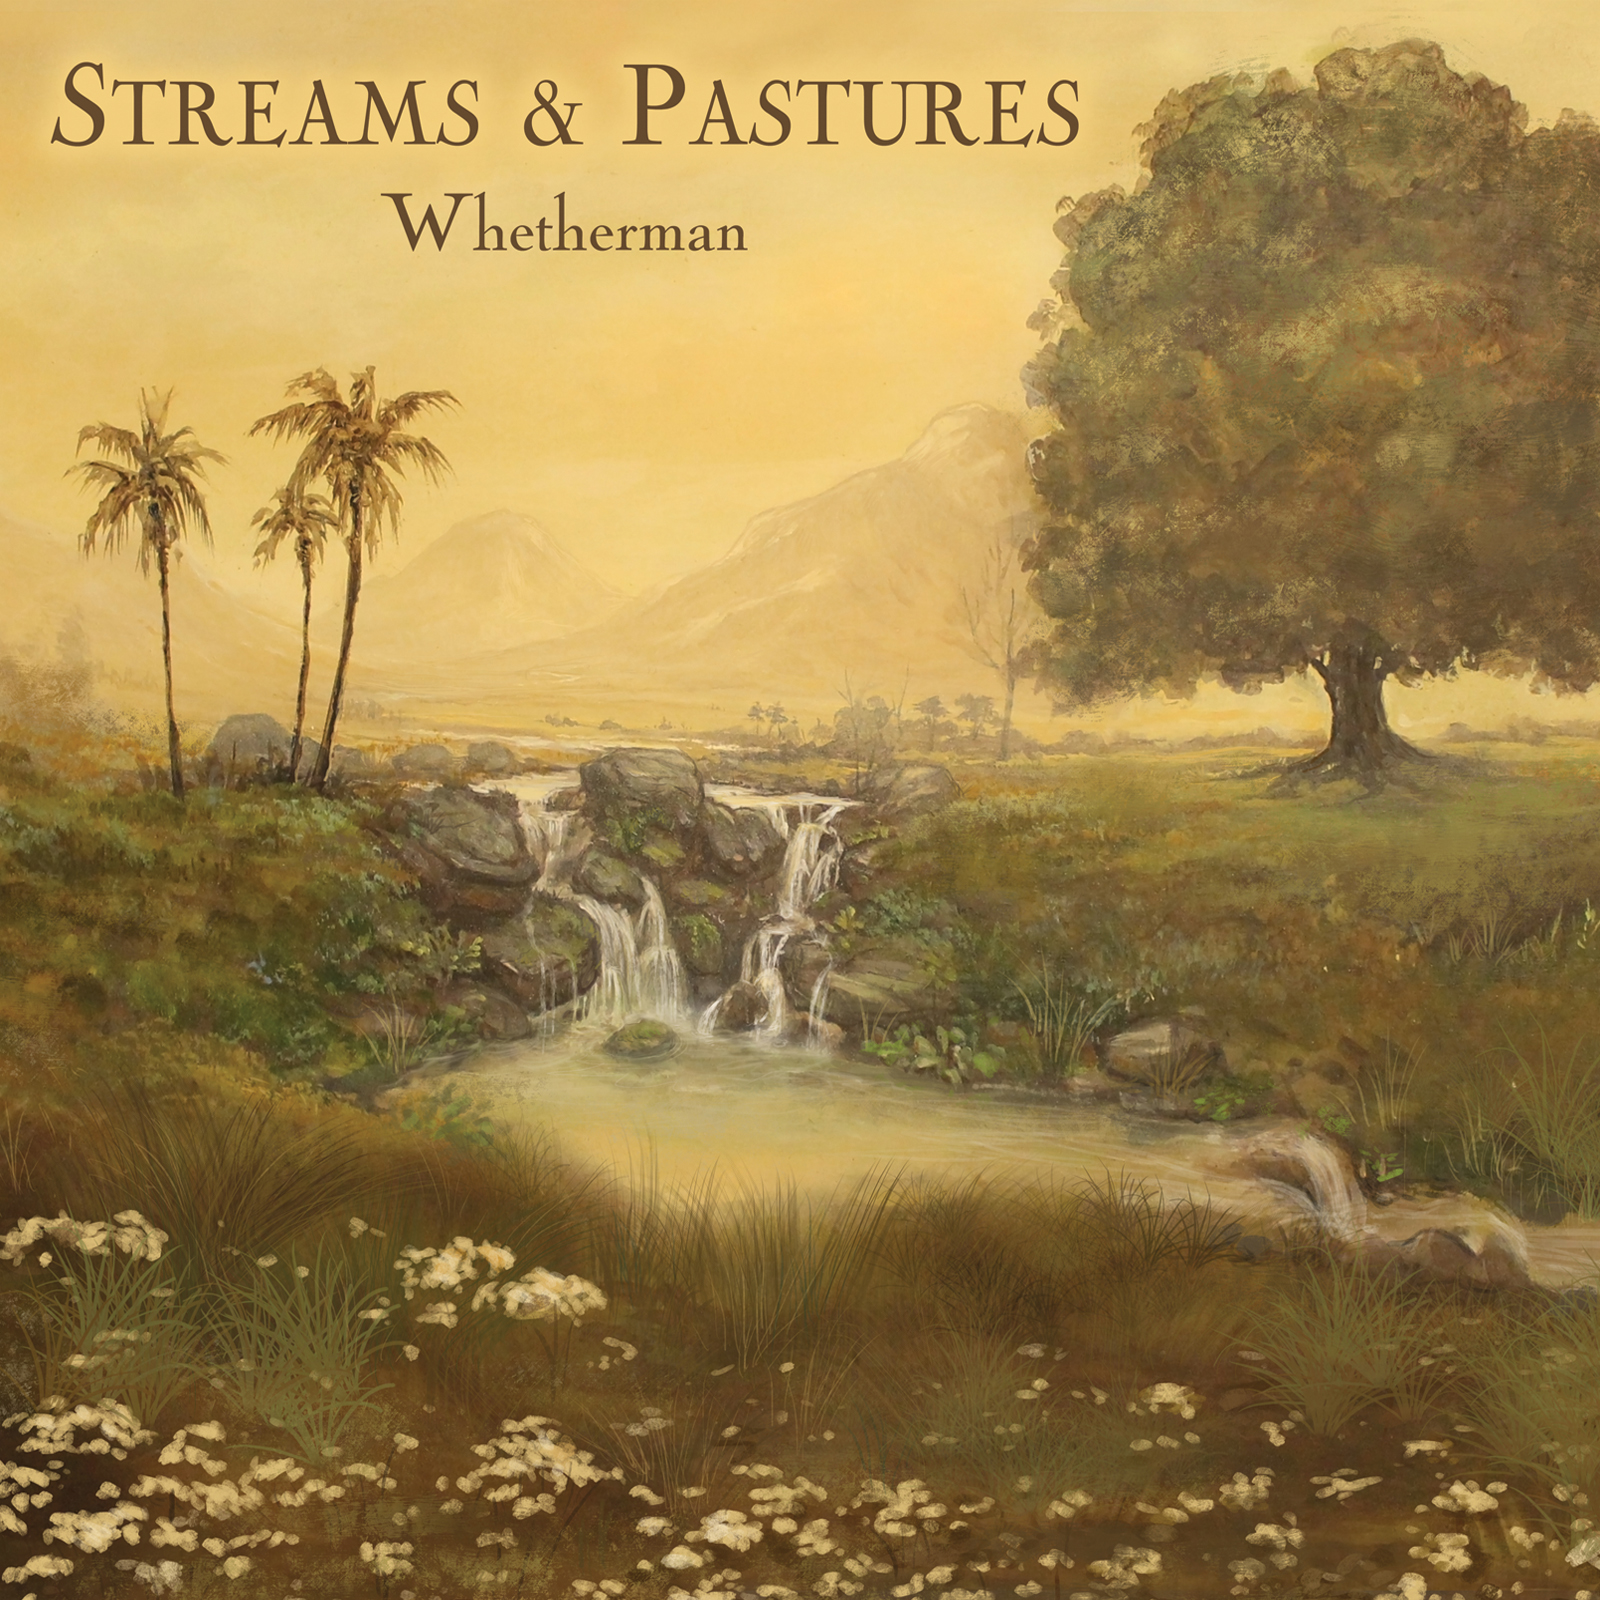 1_Streams_Pastures_Cover.jpg